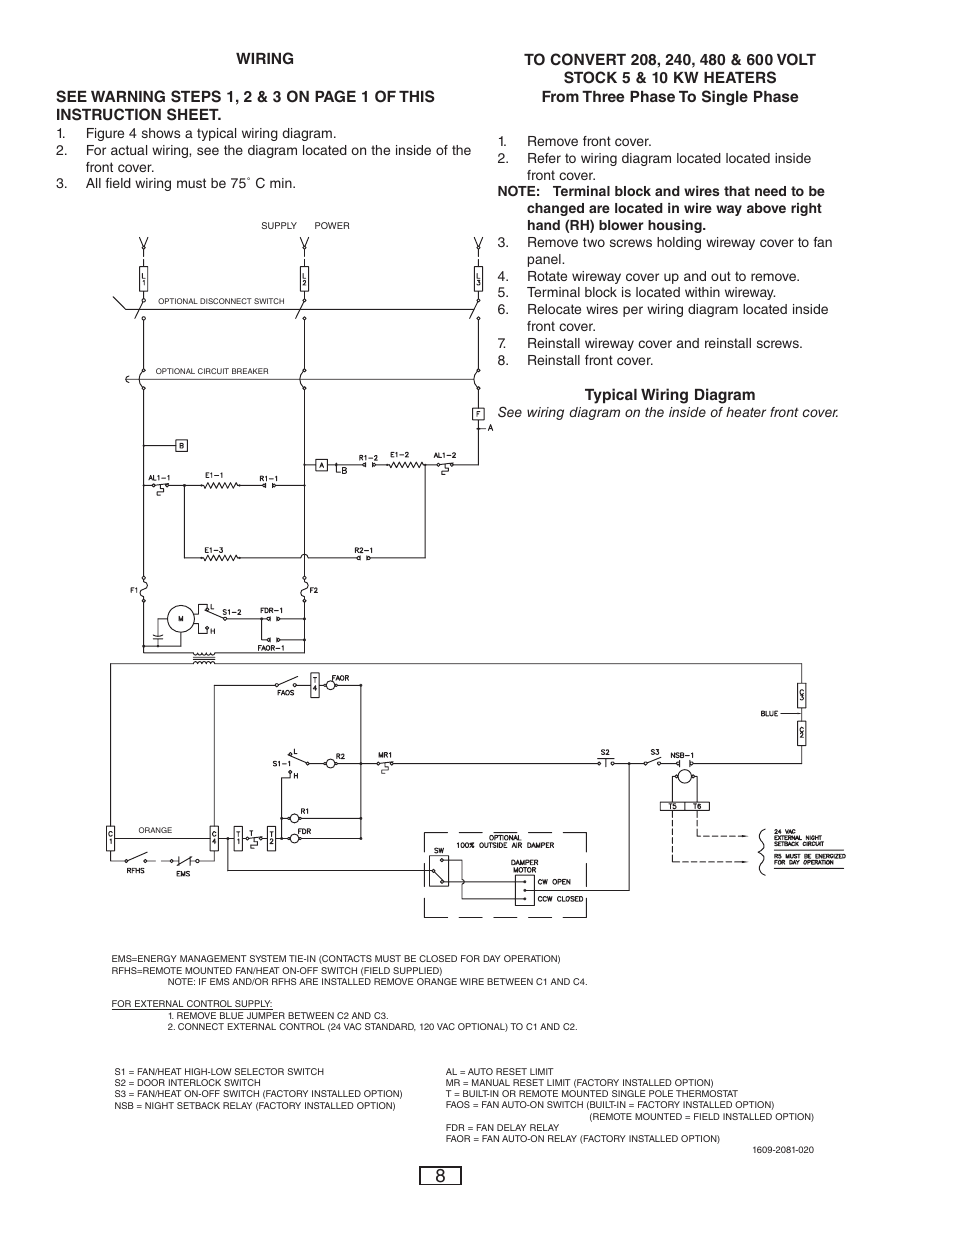 Qmark Cus900 Stock Cabinet Unit Heater User Manual Page 8 36 Also For Cu900 Cabinet Unit Heater